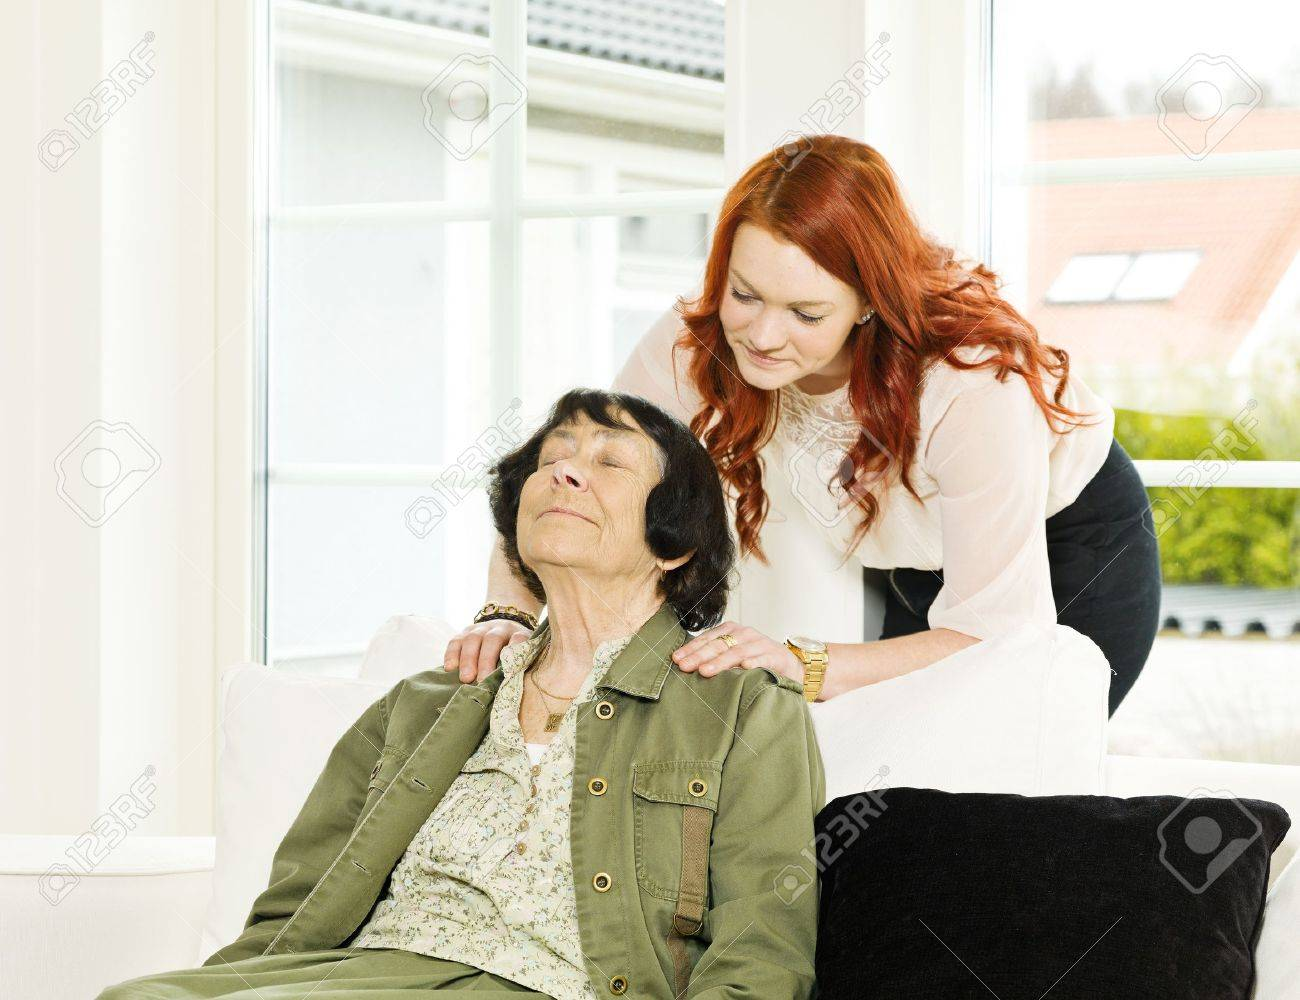 Young woman giving massage to her Grandmother Stock Photo - 12899186